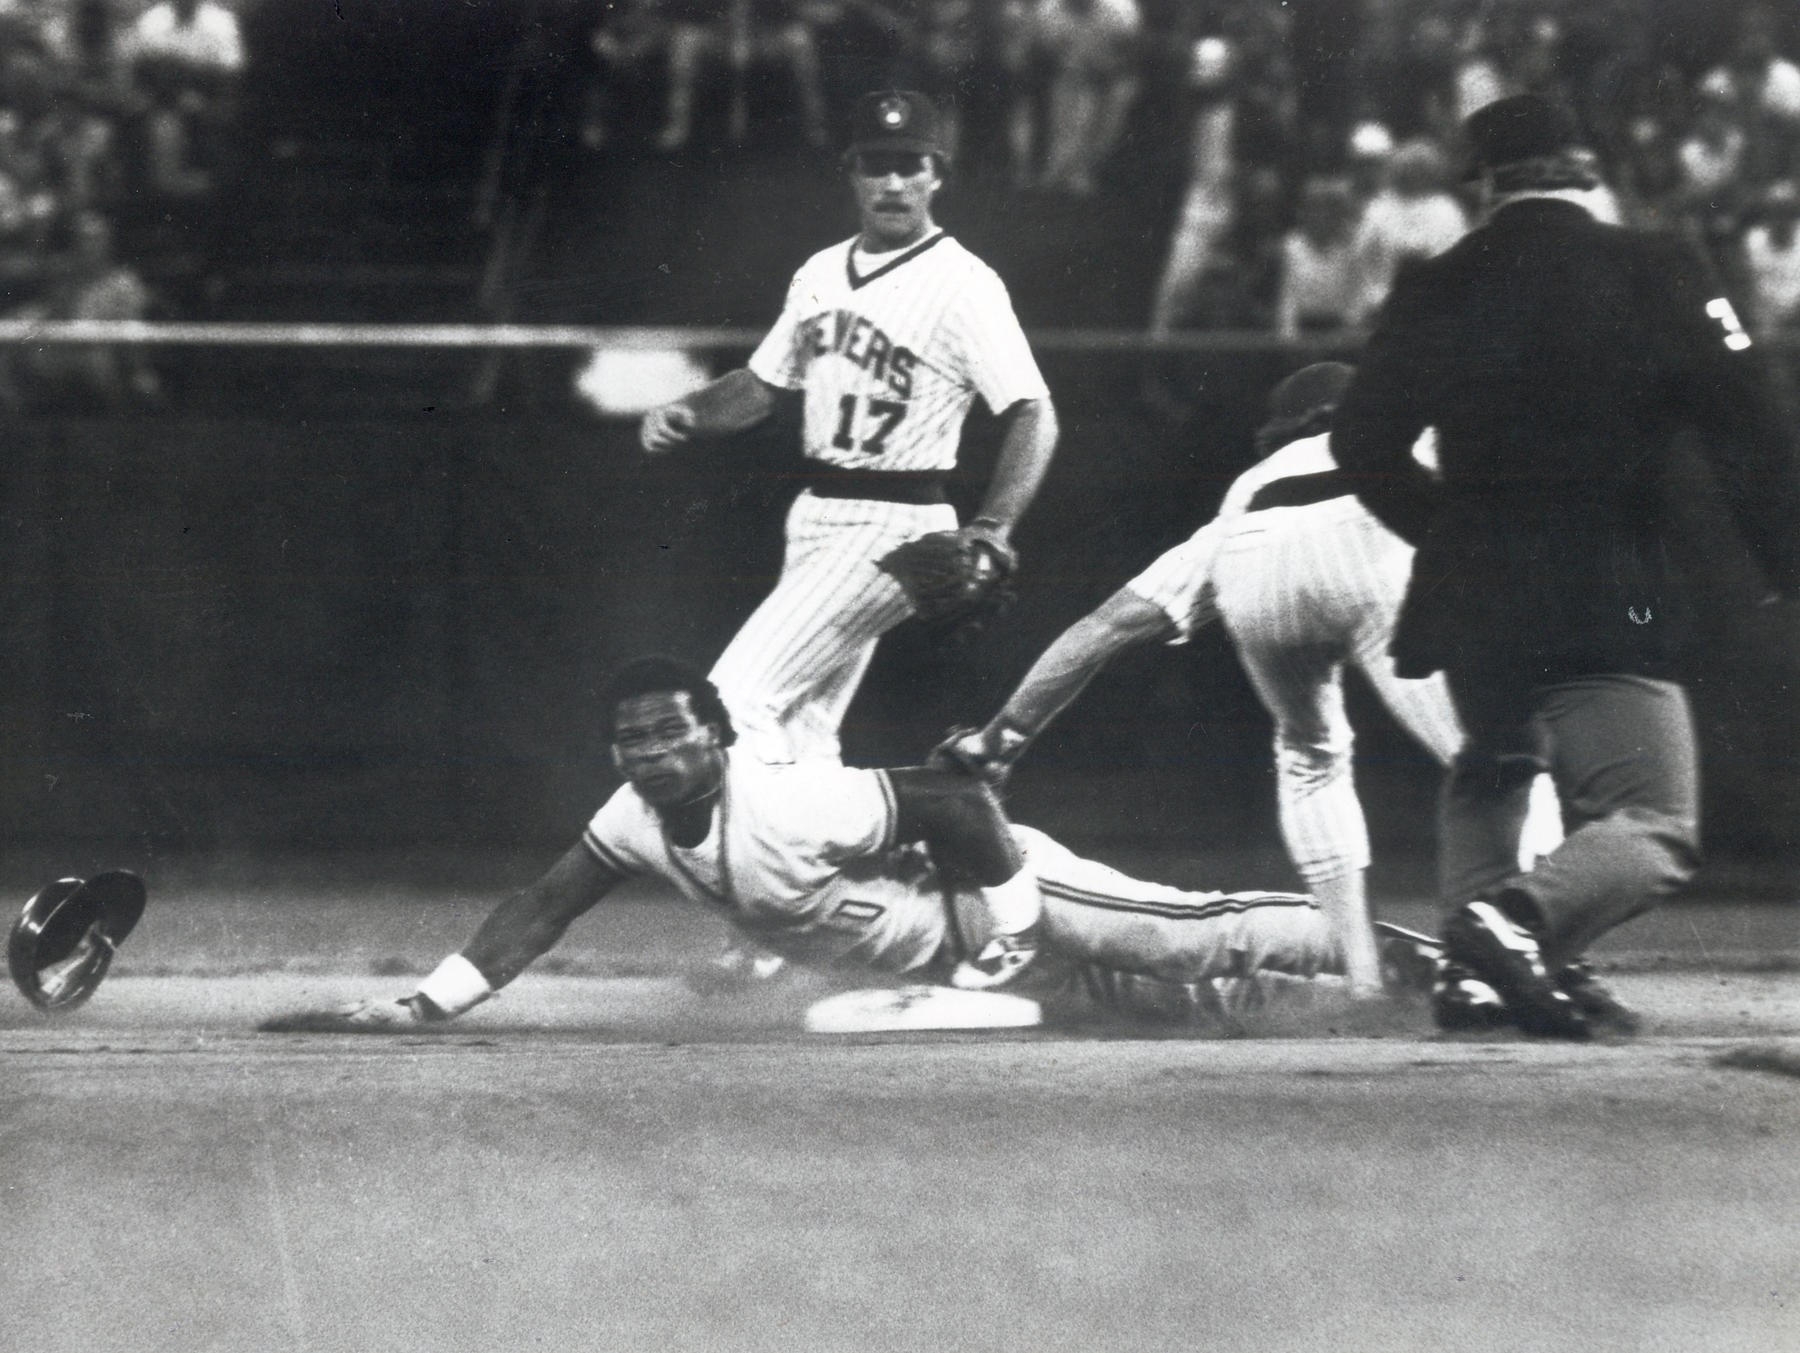 Rickey Henderson setting the stolen base record. By the end of the 1983, Henderson became the first and only player to have two back to back seasons with more than 100 stolen bases. BL-1455-83 (National Baseball Hall of Fame Library)